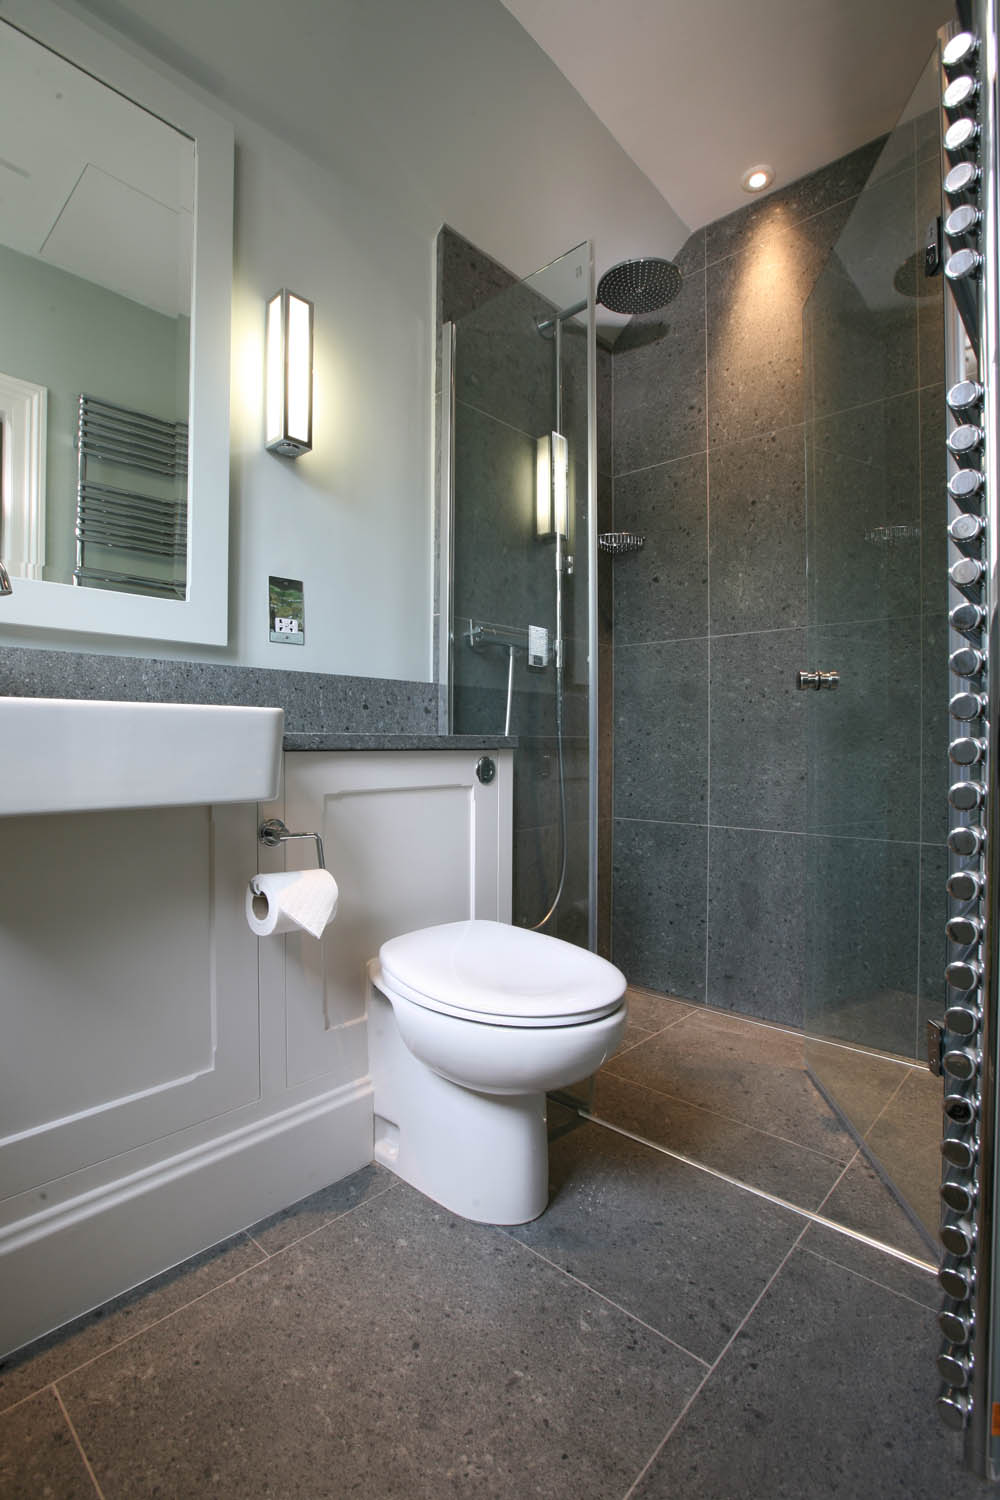 Blenstone Stone Specialists Bathrooms